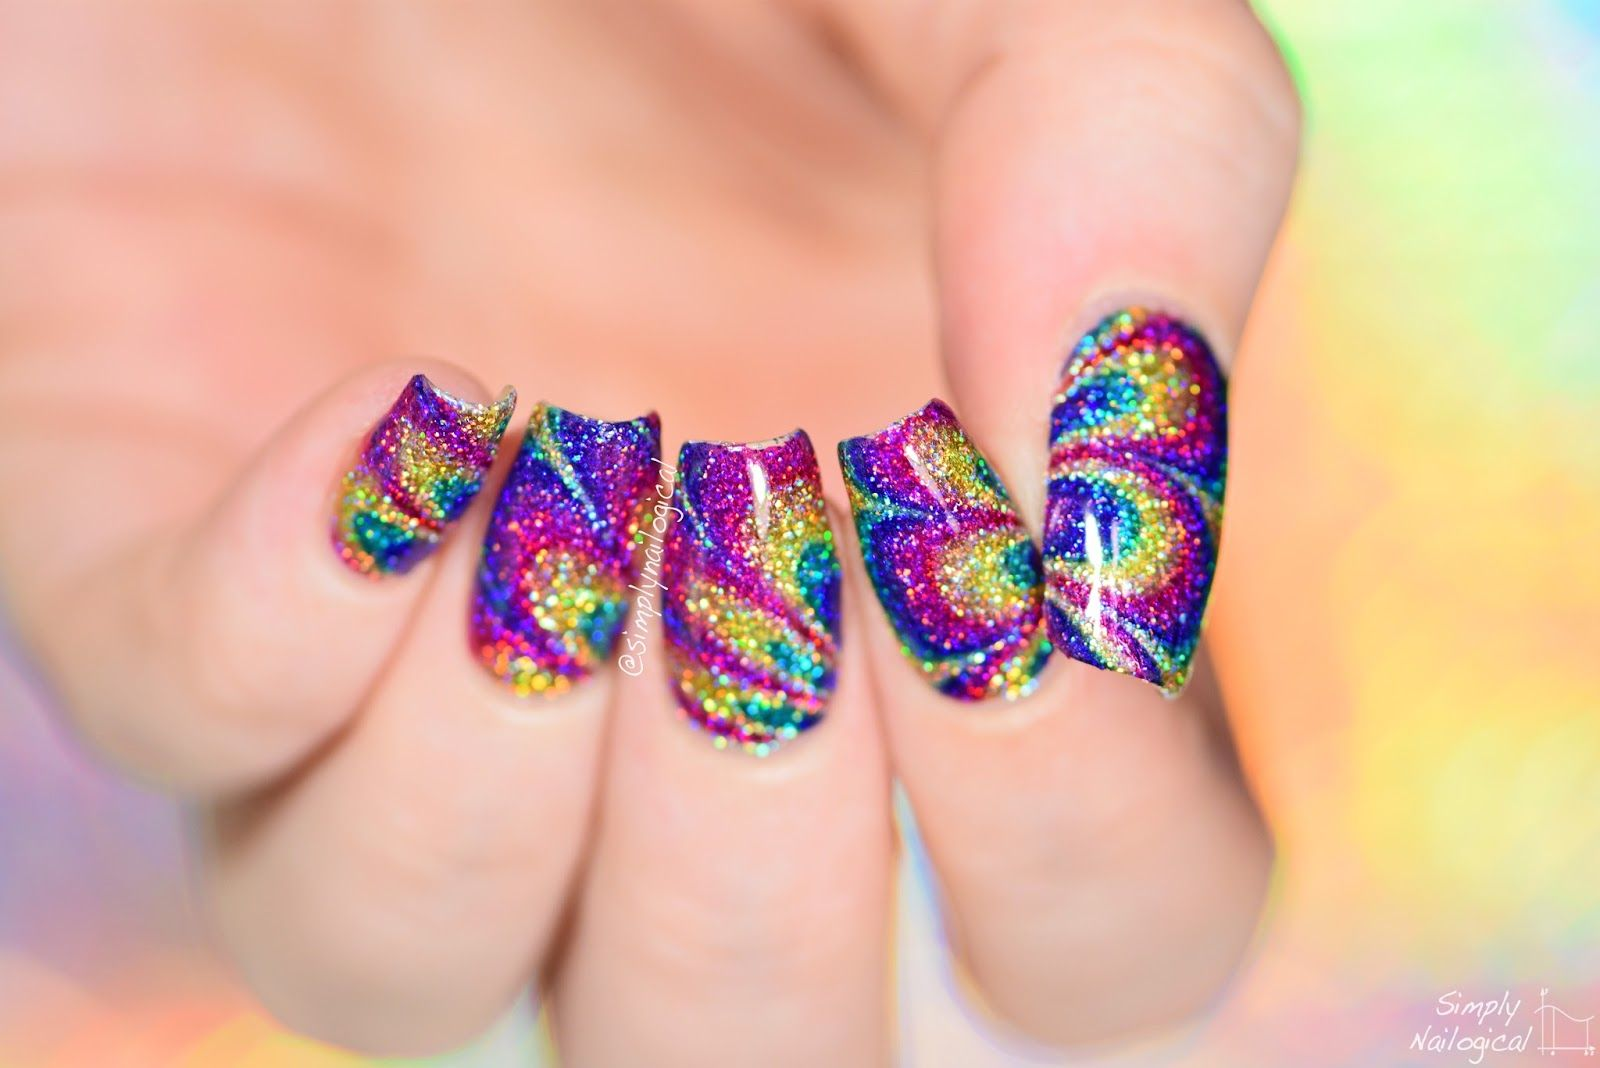 Simply nailogical sparkly rainbow watermarble with no water simply nailogical sparkly rainbow watermarble with no water prinsesfo Image collections